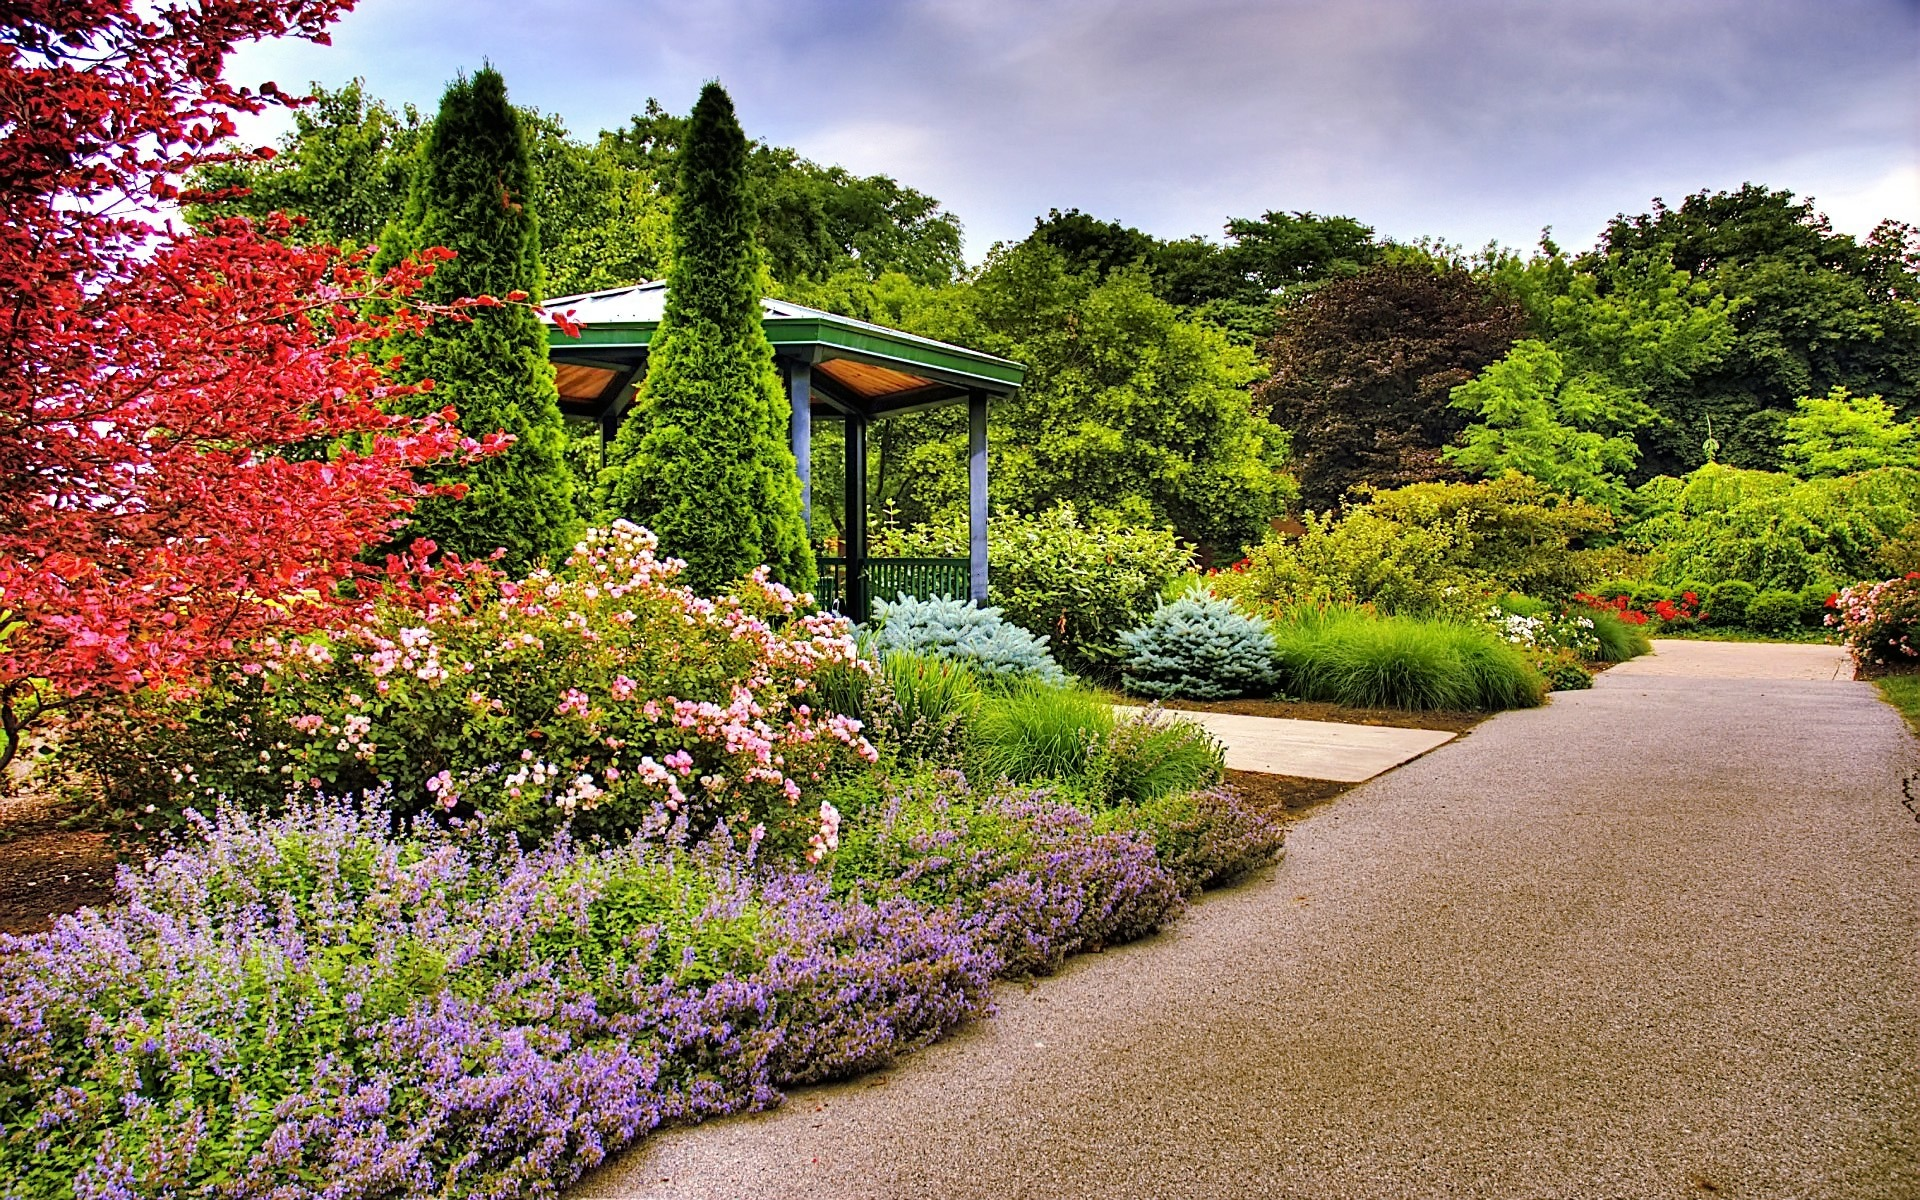 Captivating Garden Wallpaper Other Nature Wallpapers